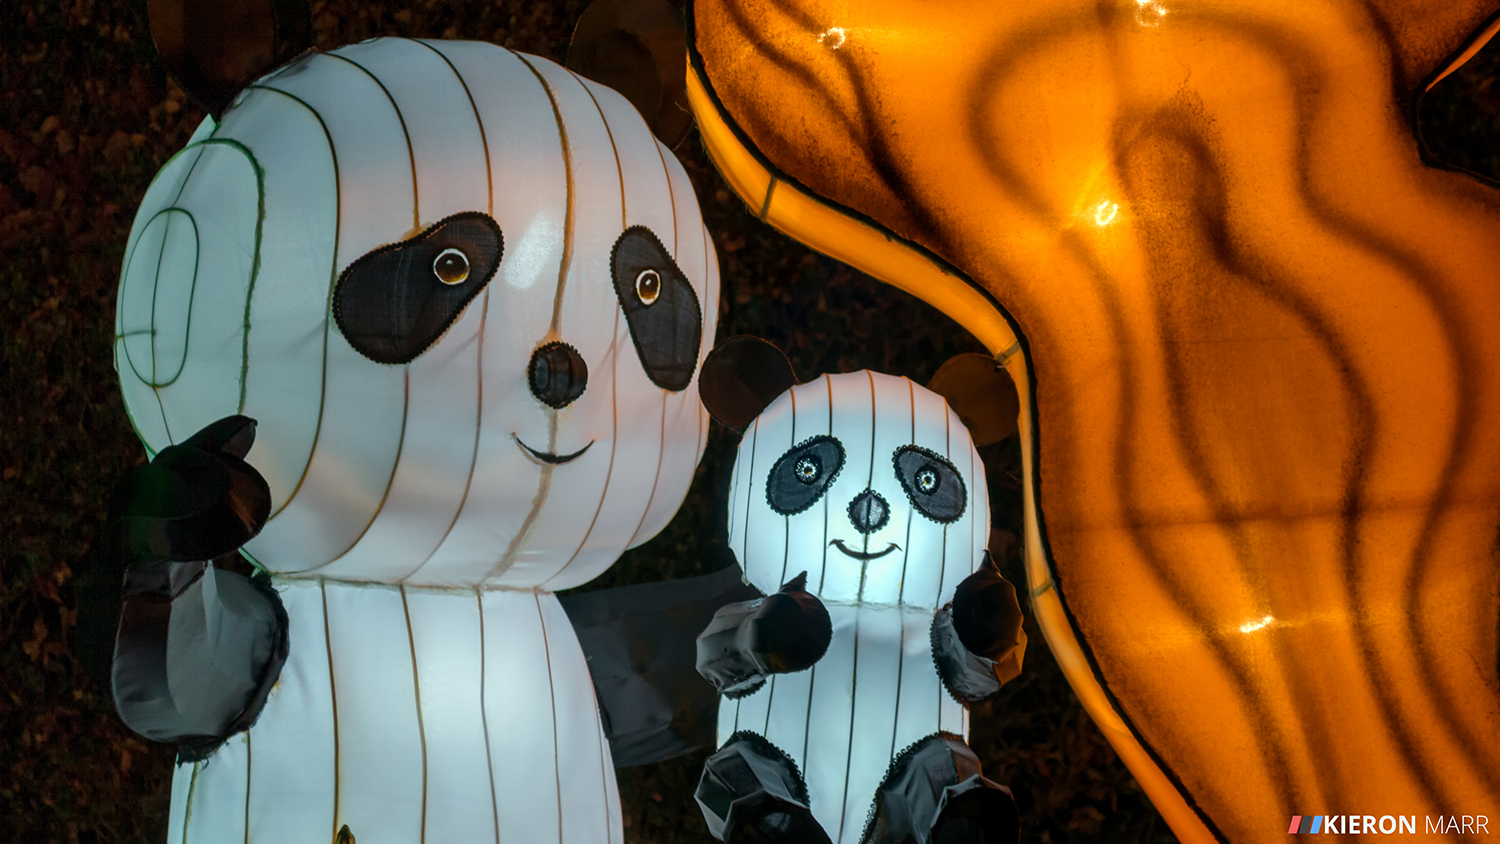 Longleat Festival of Light 2014 - Panda Family